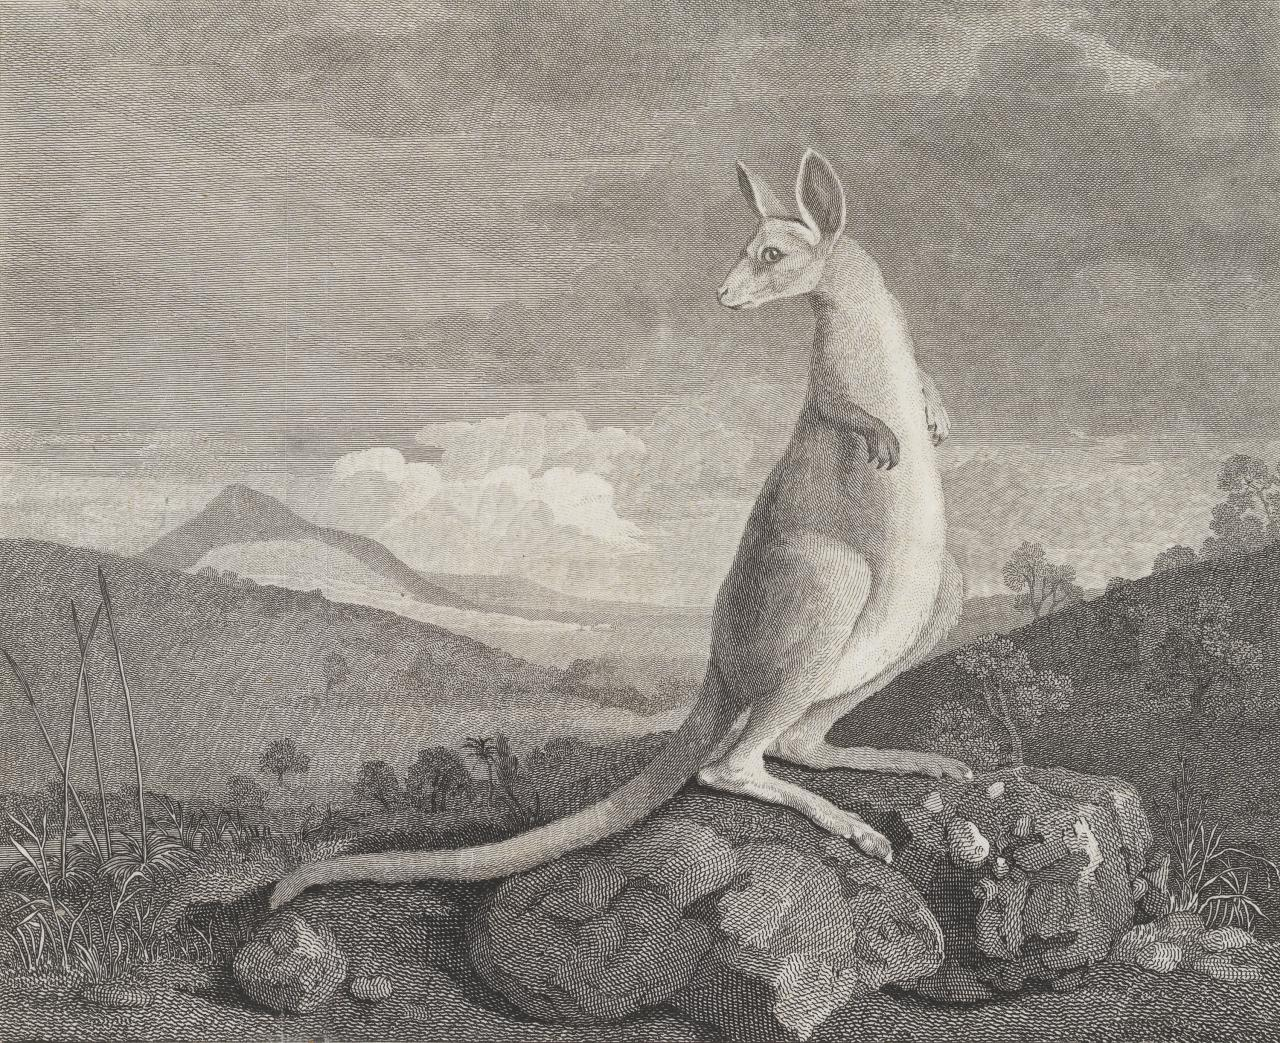 The kanguroo, an animal found on the coast of New Holland